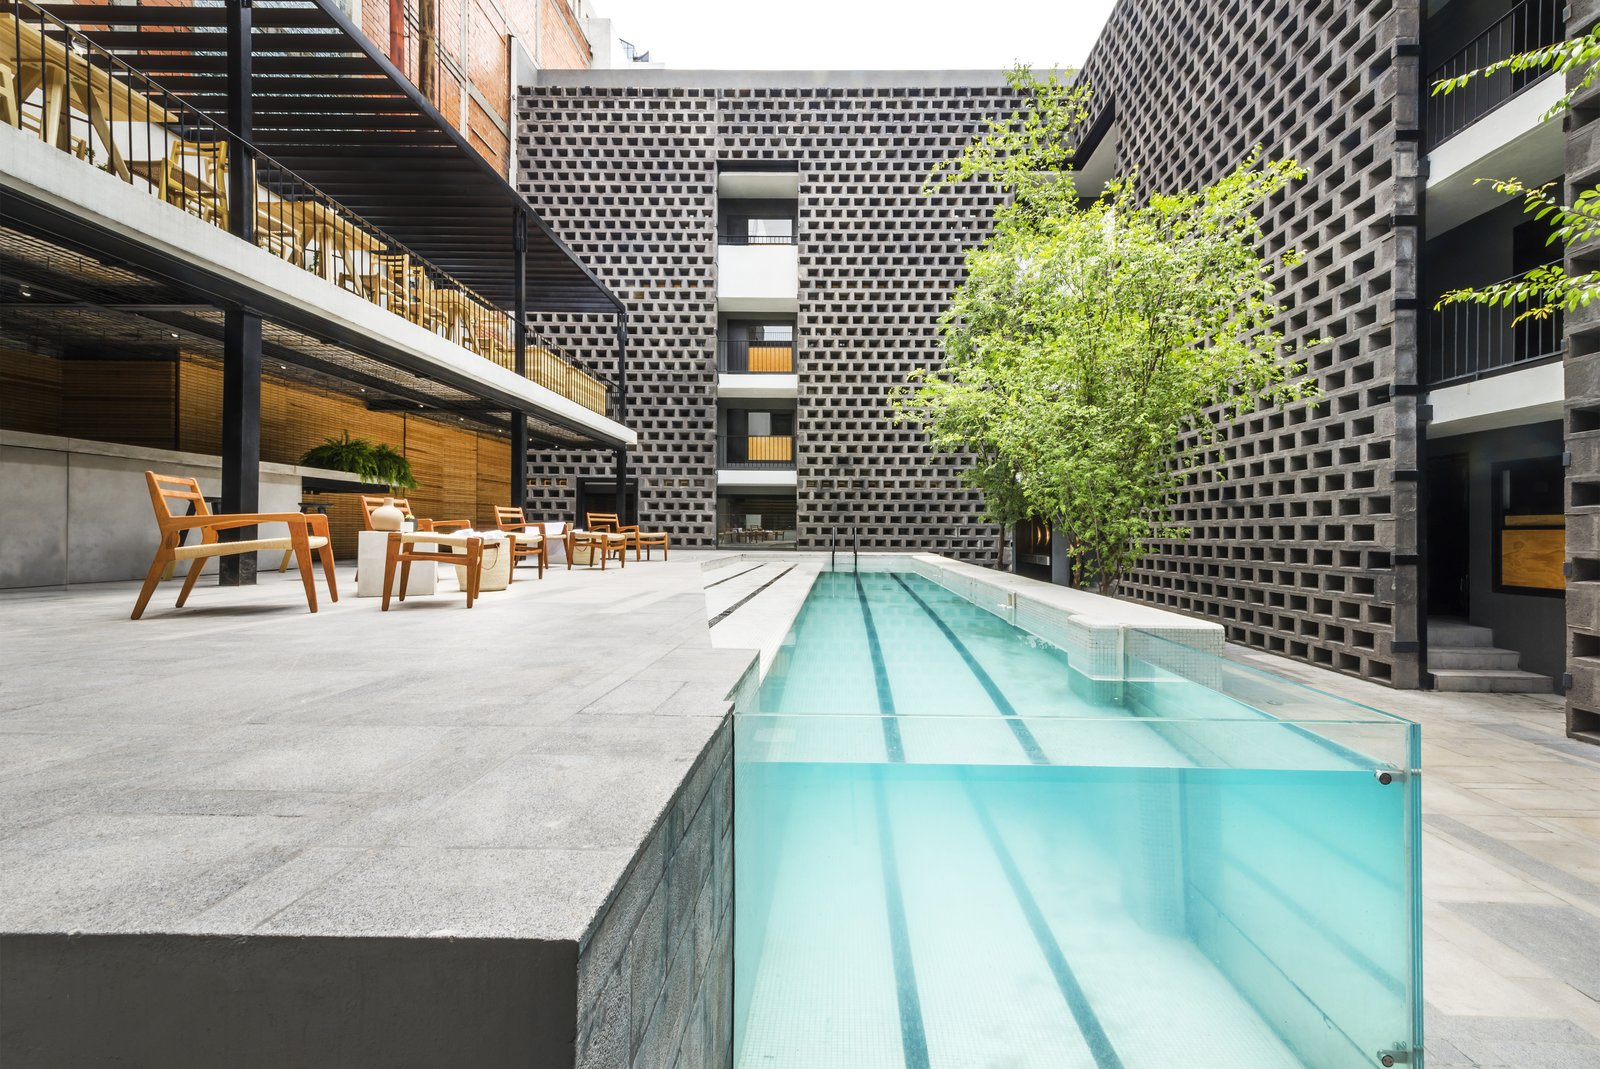 A pool is still the focal point of the courtyard, but its modernized, streamlined design makes a dramatic statement.  Photo 3 of 7 in This Mexico City Hotel is a Showcase of New Mexican Design